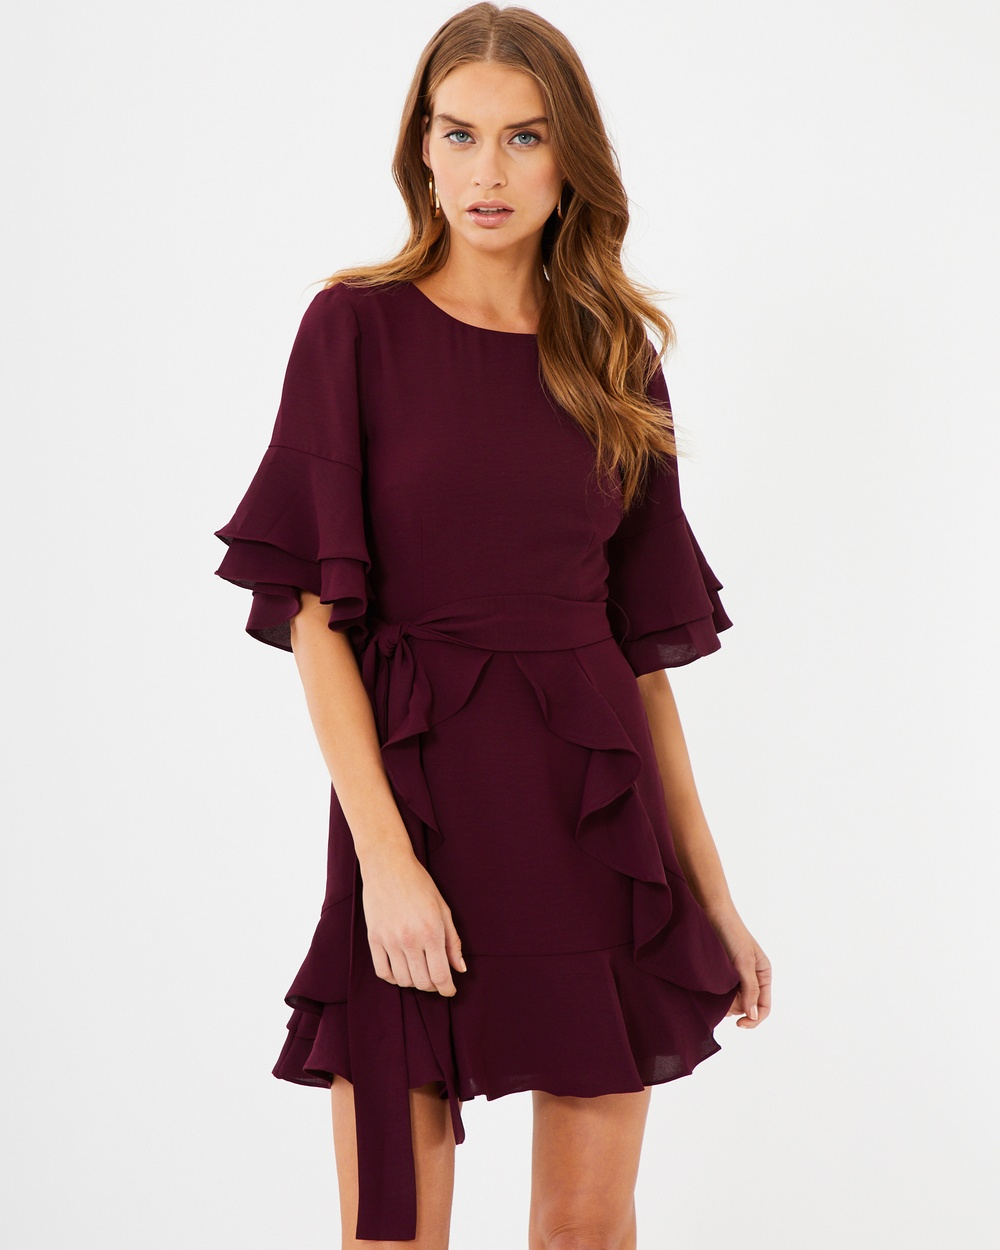 Tussah Cecilia Ruffle Dress Dresses Berry Cecilia Ruffle Dress